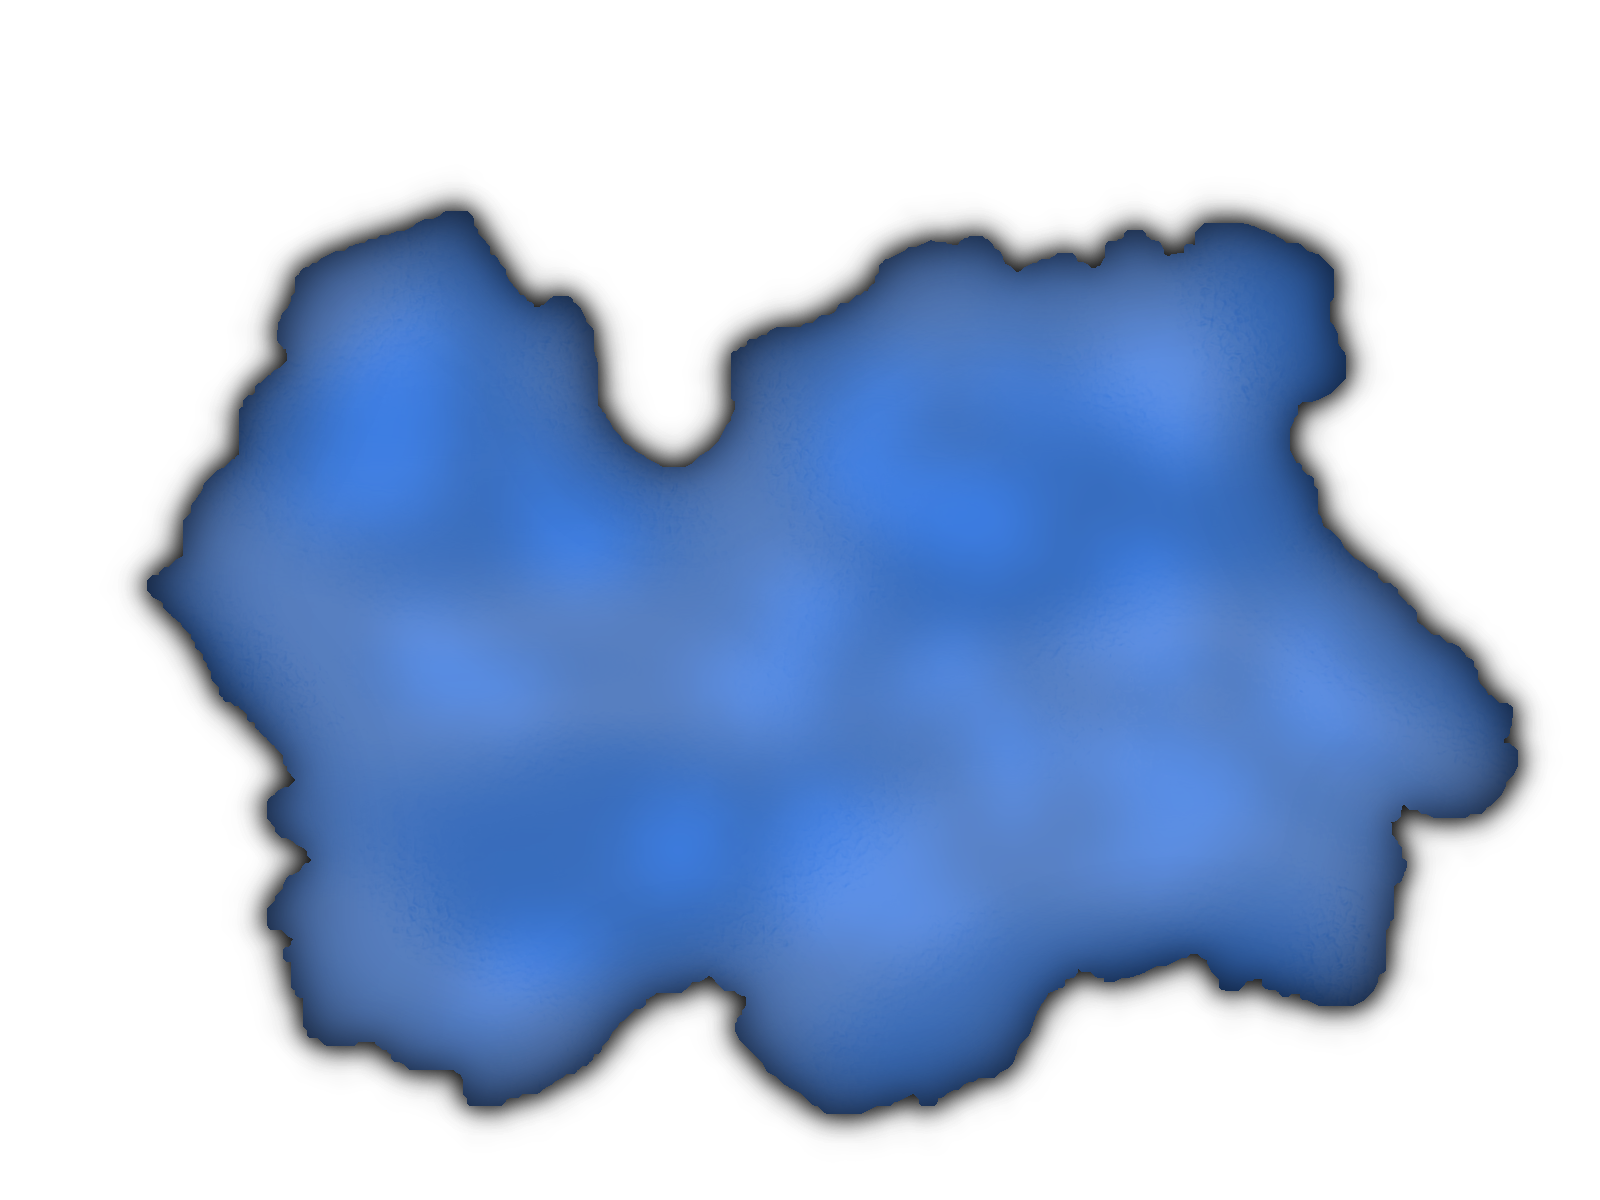 Puddle of water png. Index mapping terrain puddles